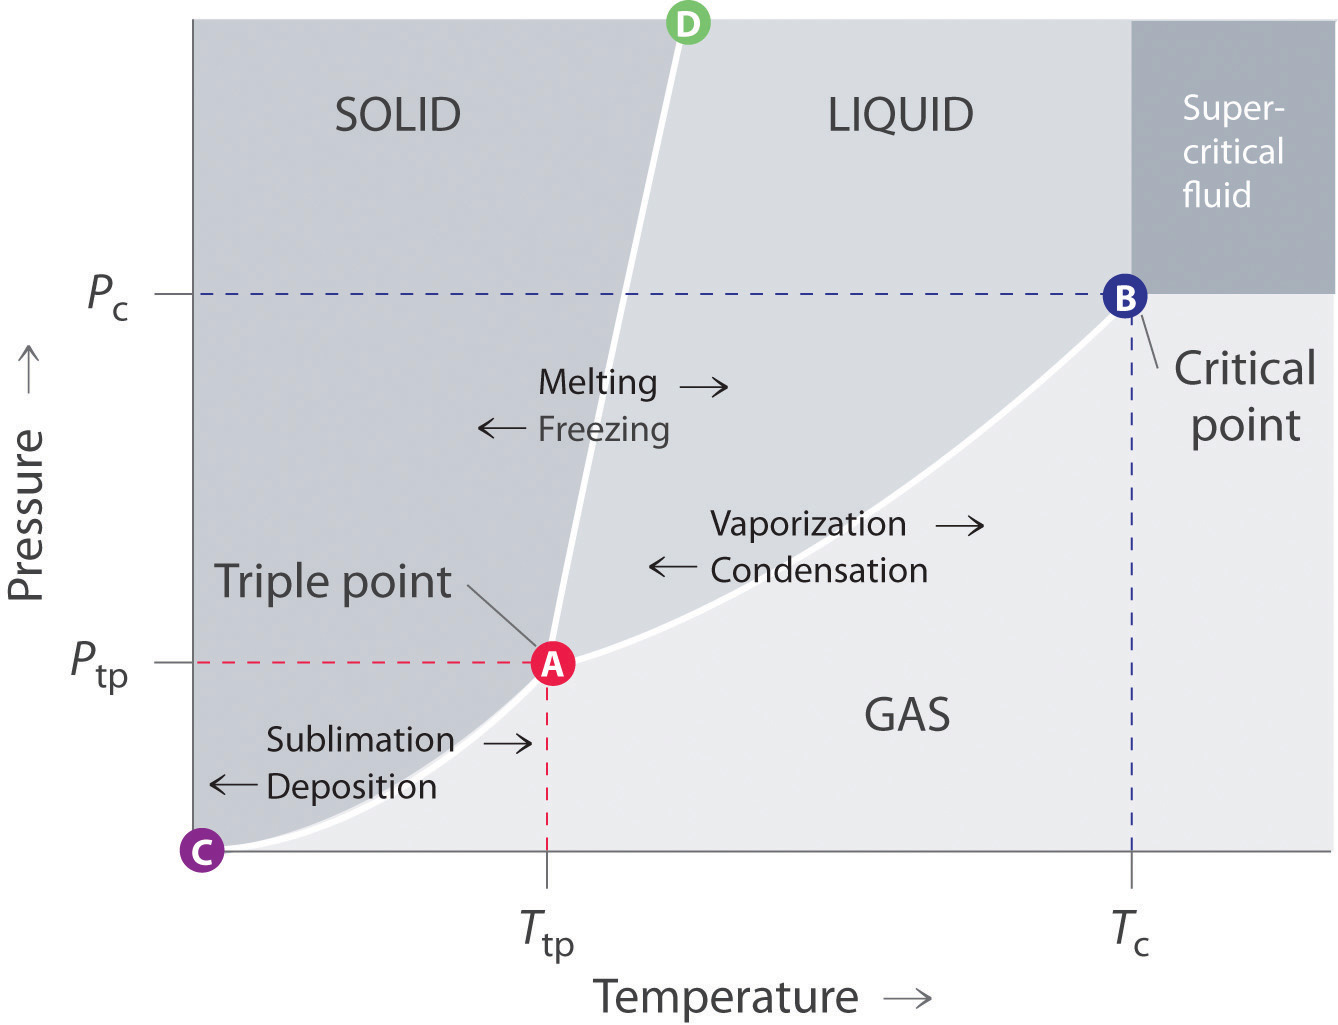 normal boiling point phase diagram of a butterfly worksheet general chemistry: principles, patterns, and applications v1.0 | flatworld